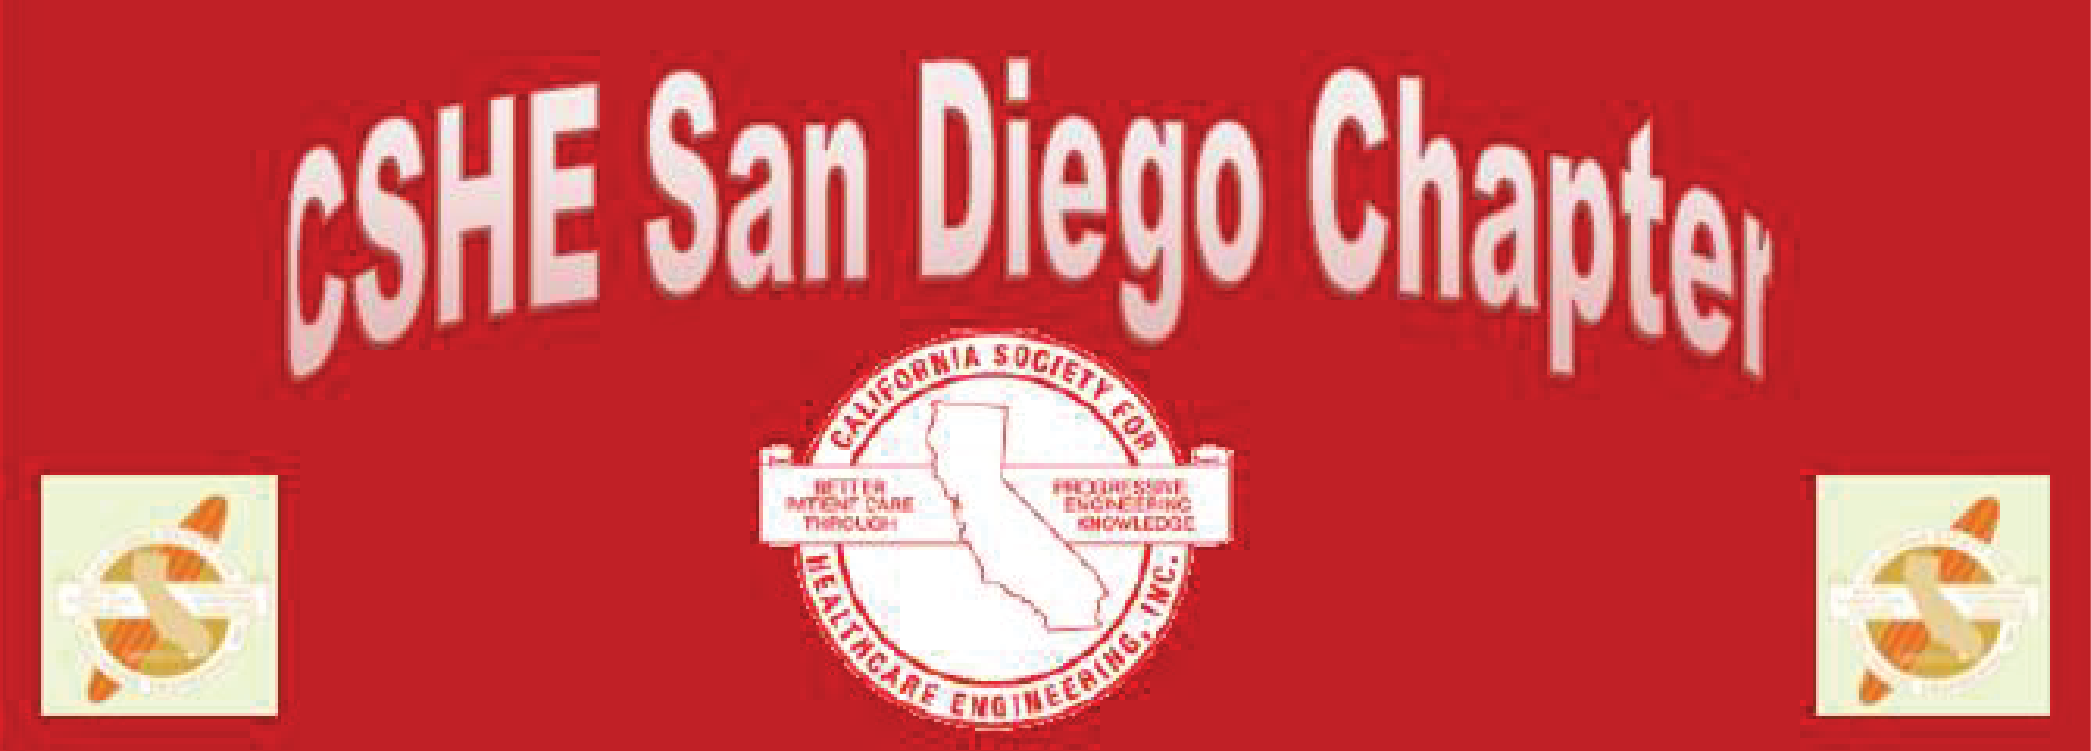 SHE San Diego Chapter